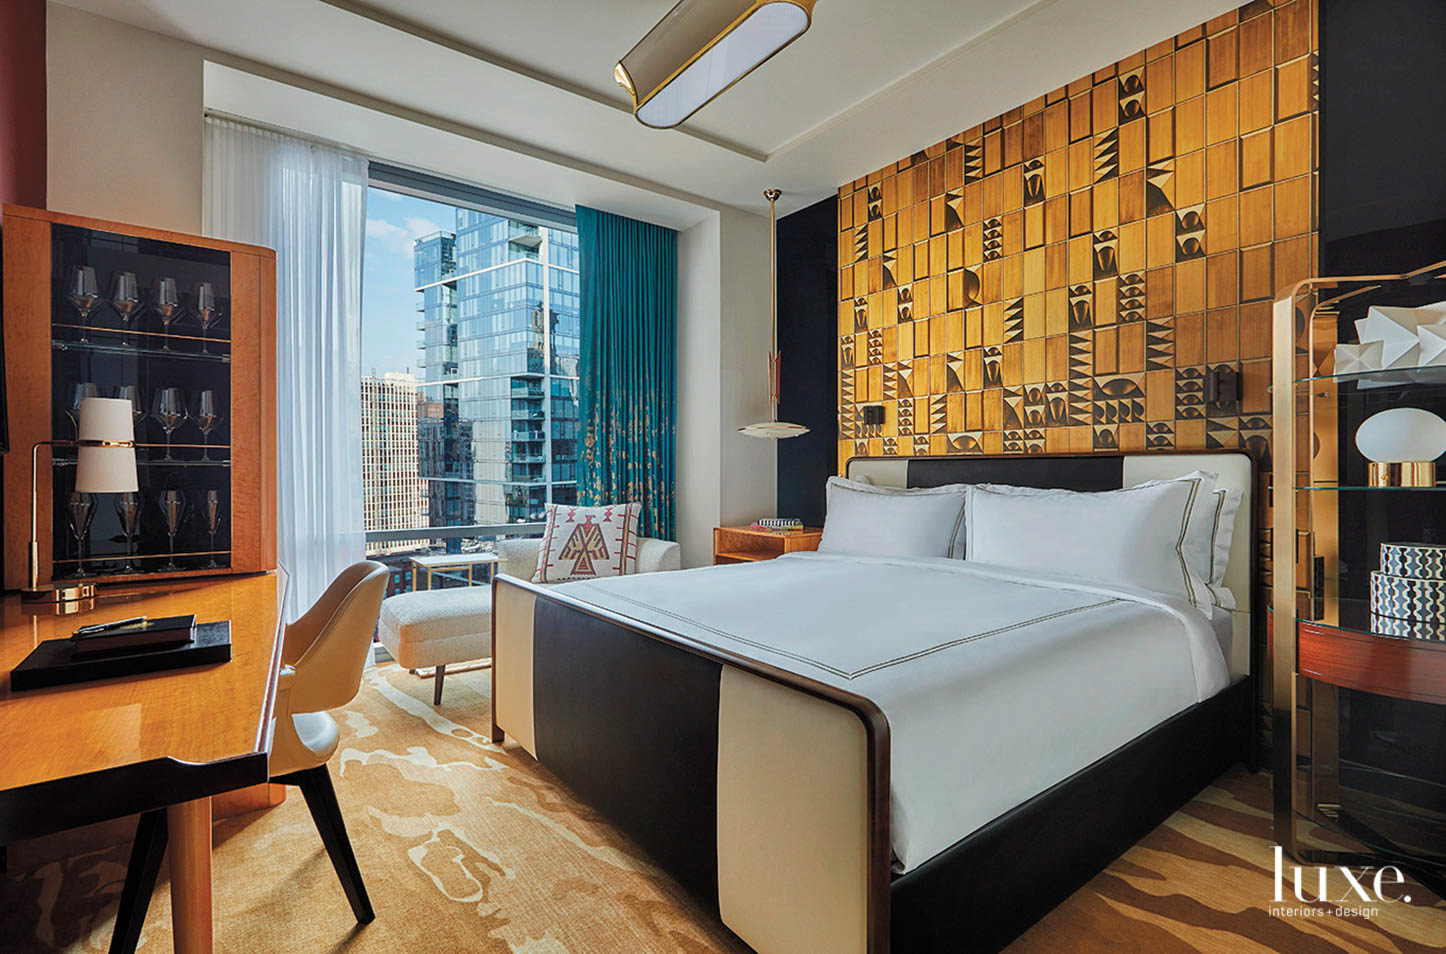 Golden wood finishes brighten up this Chicago hotel room.